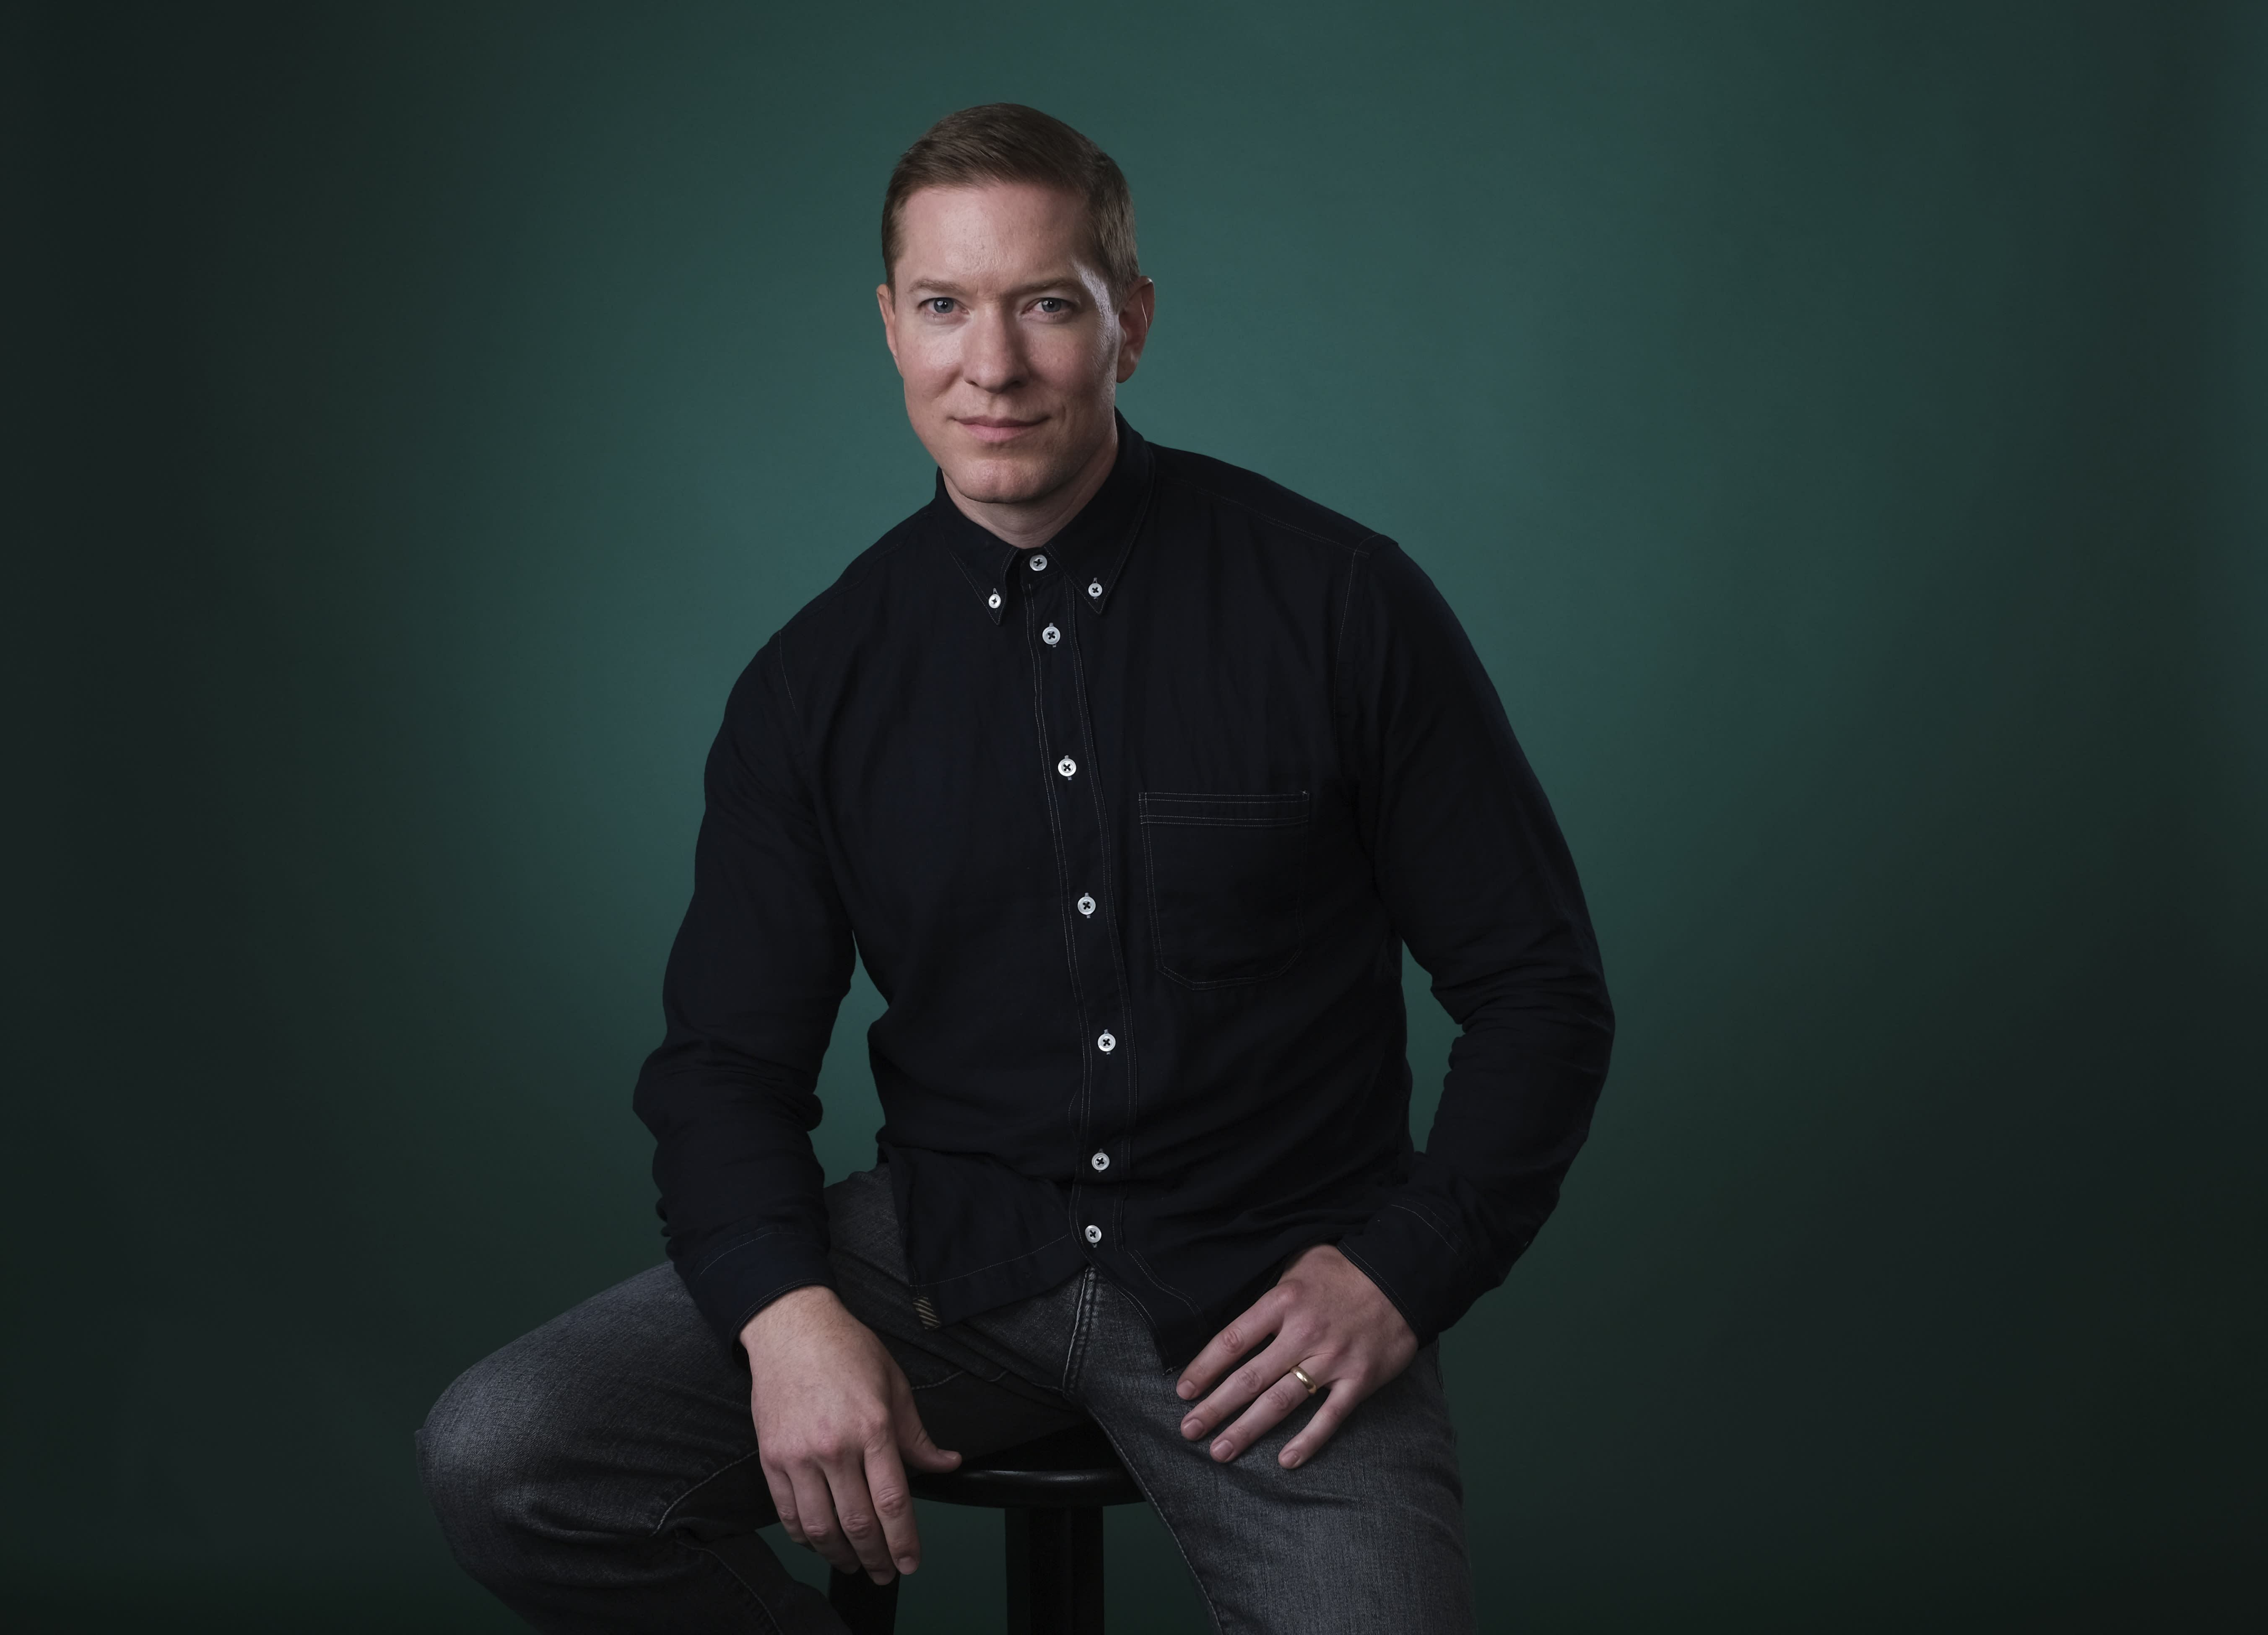 """In this Friday, July 26, 2019 photo, Joseph Sikora poses for a portrait during the Television Critics Association Summer Press Tour at the Beverly Hilton in Beverly Hills, Calif. Sikora appears on """"Power,"""" the Starz series that has turned into a ratings juggernaut and already sparked plans for a spinoff. The show begins airing its final season on Sunday, Aug. 25. (Photo by Chris Pizzello/Invision/AP)"""